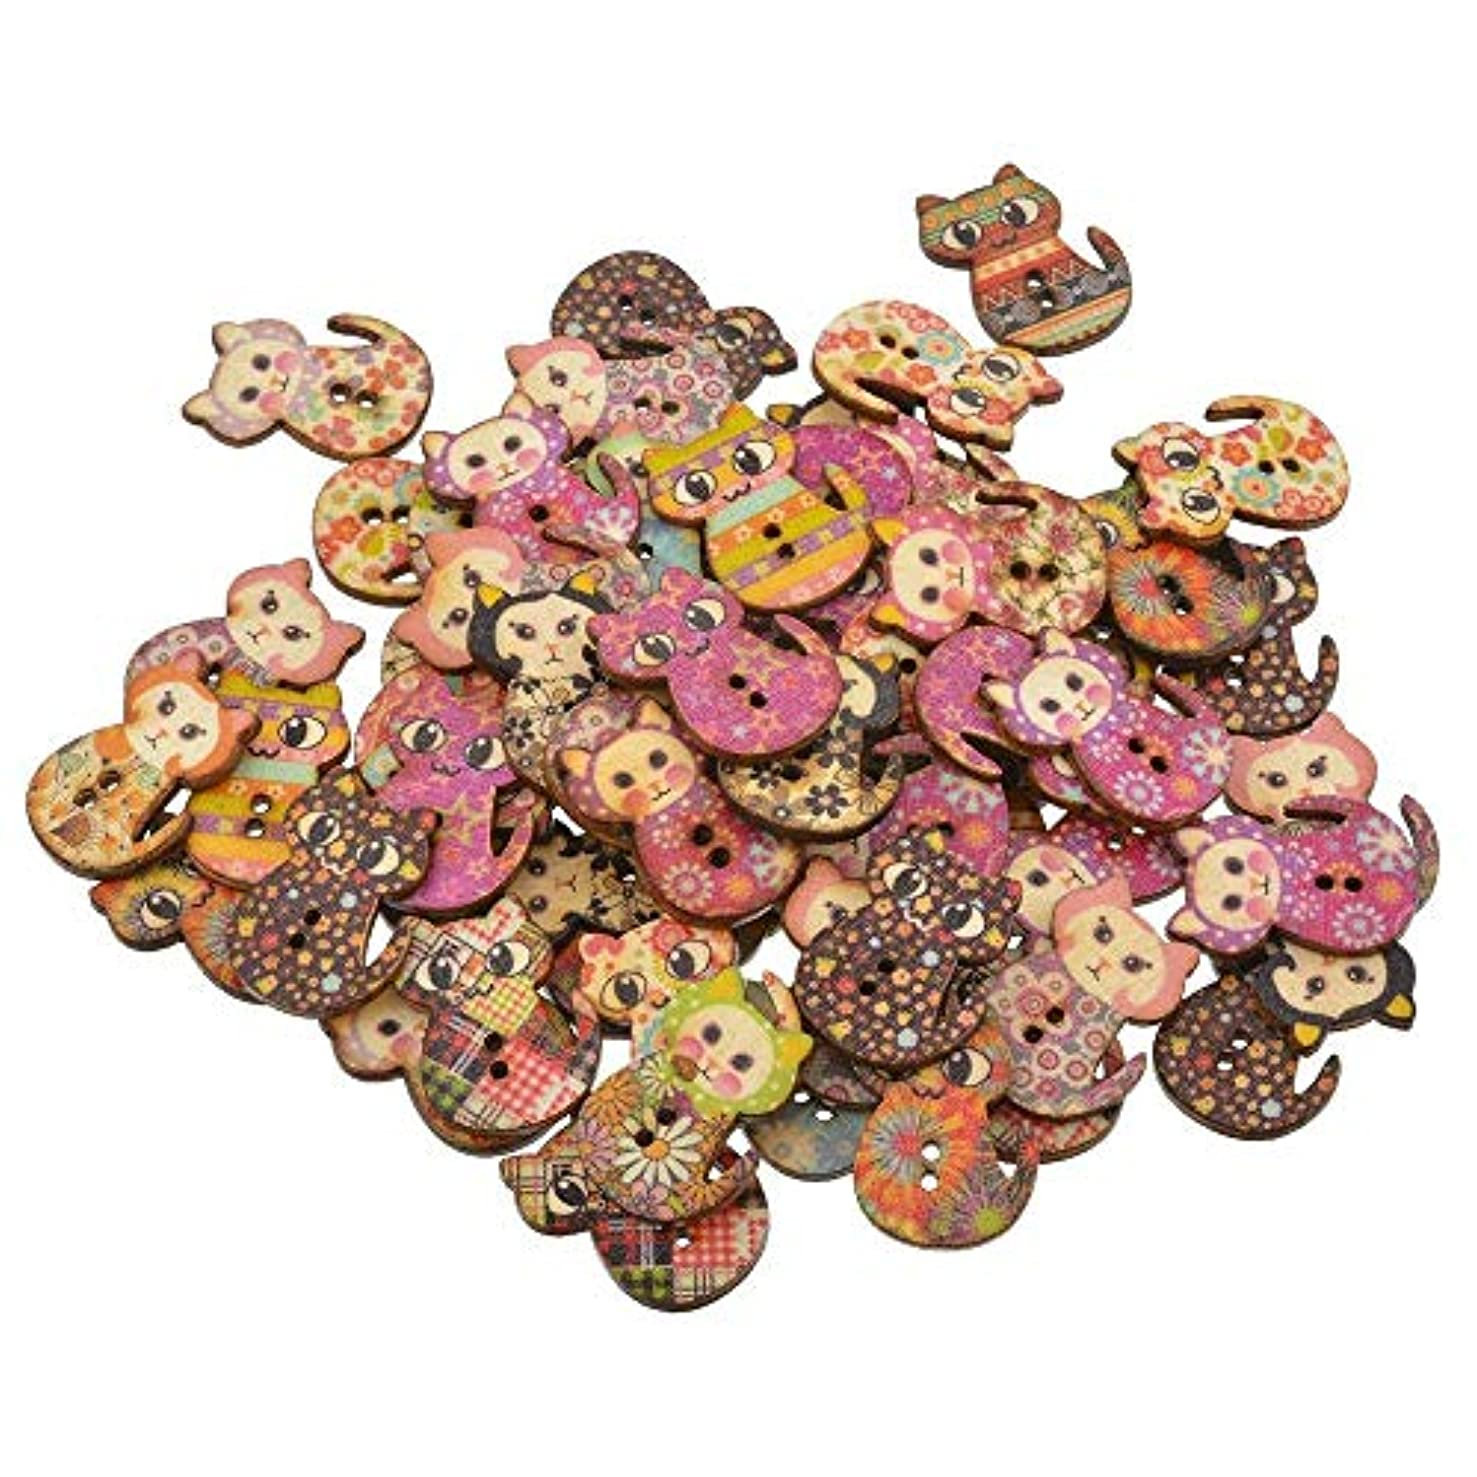 XGuangage 100pcs Mixed Random 2 Holes Cat Shape Wood Wooden Buttons for DIY Sewing Crafting